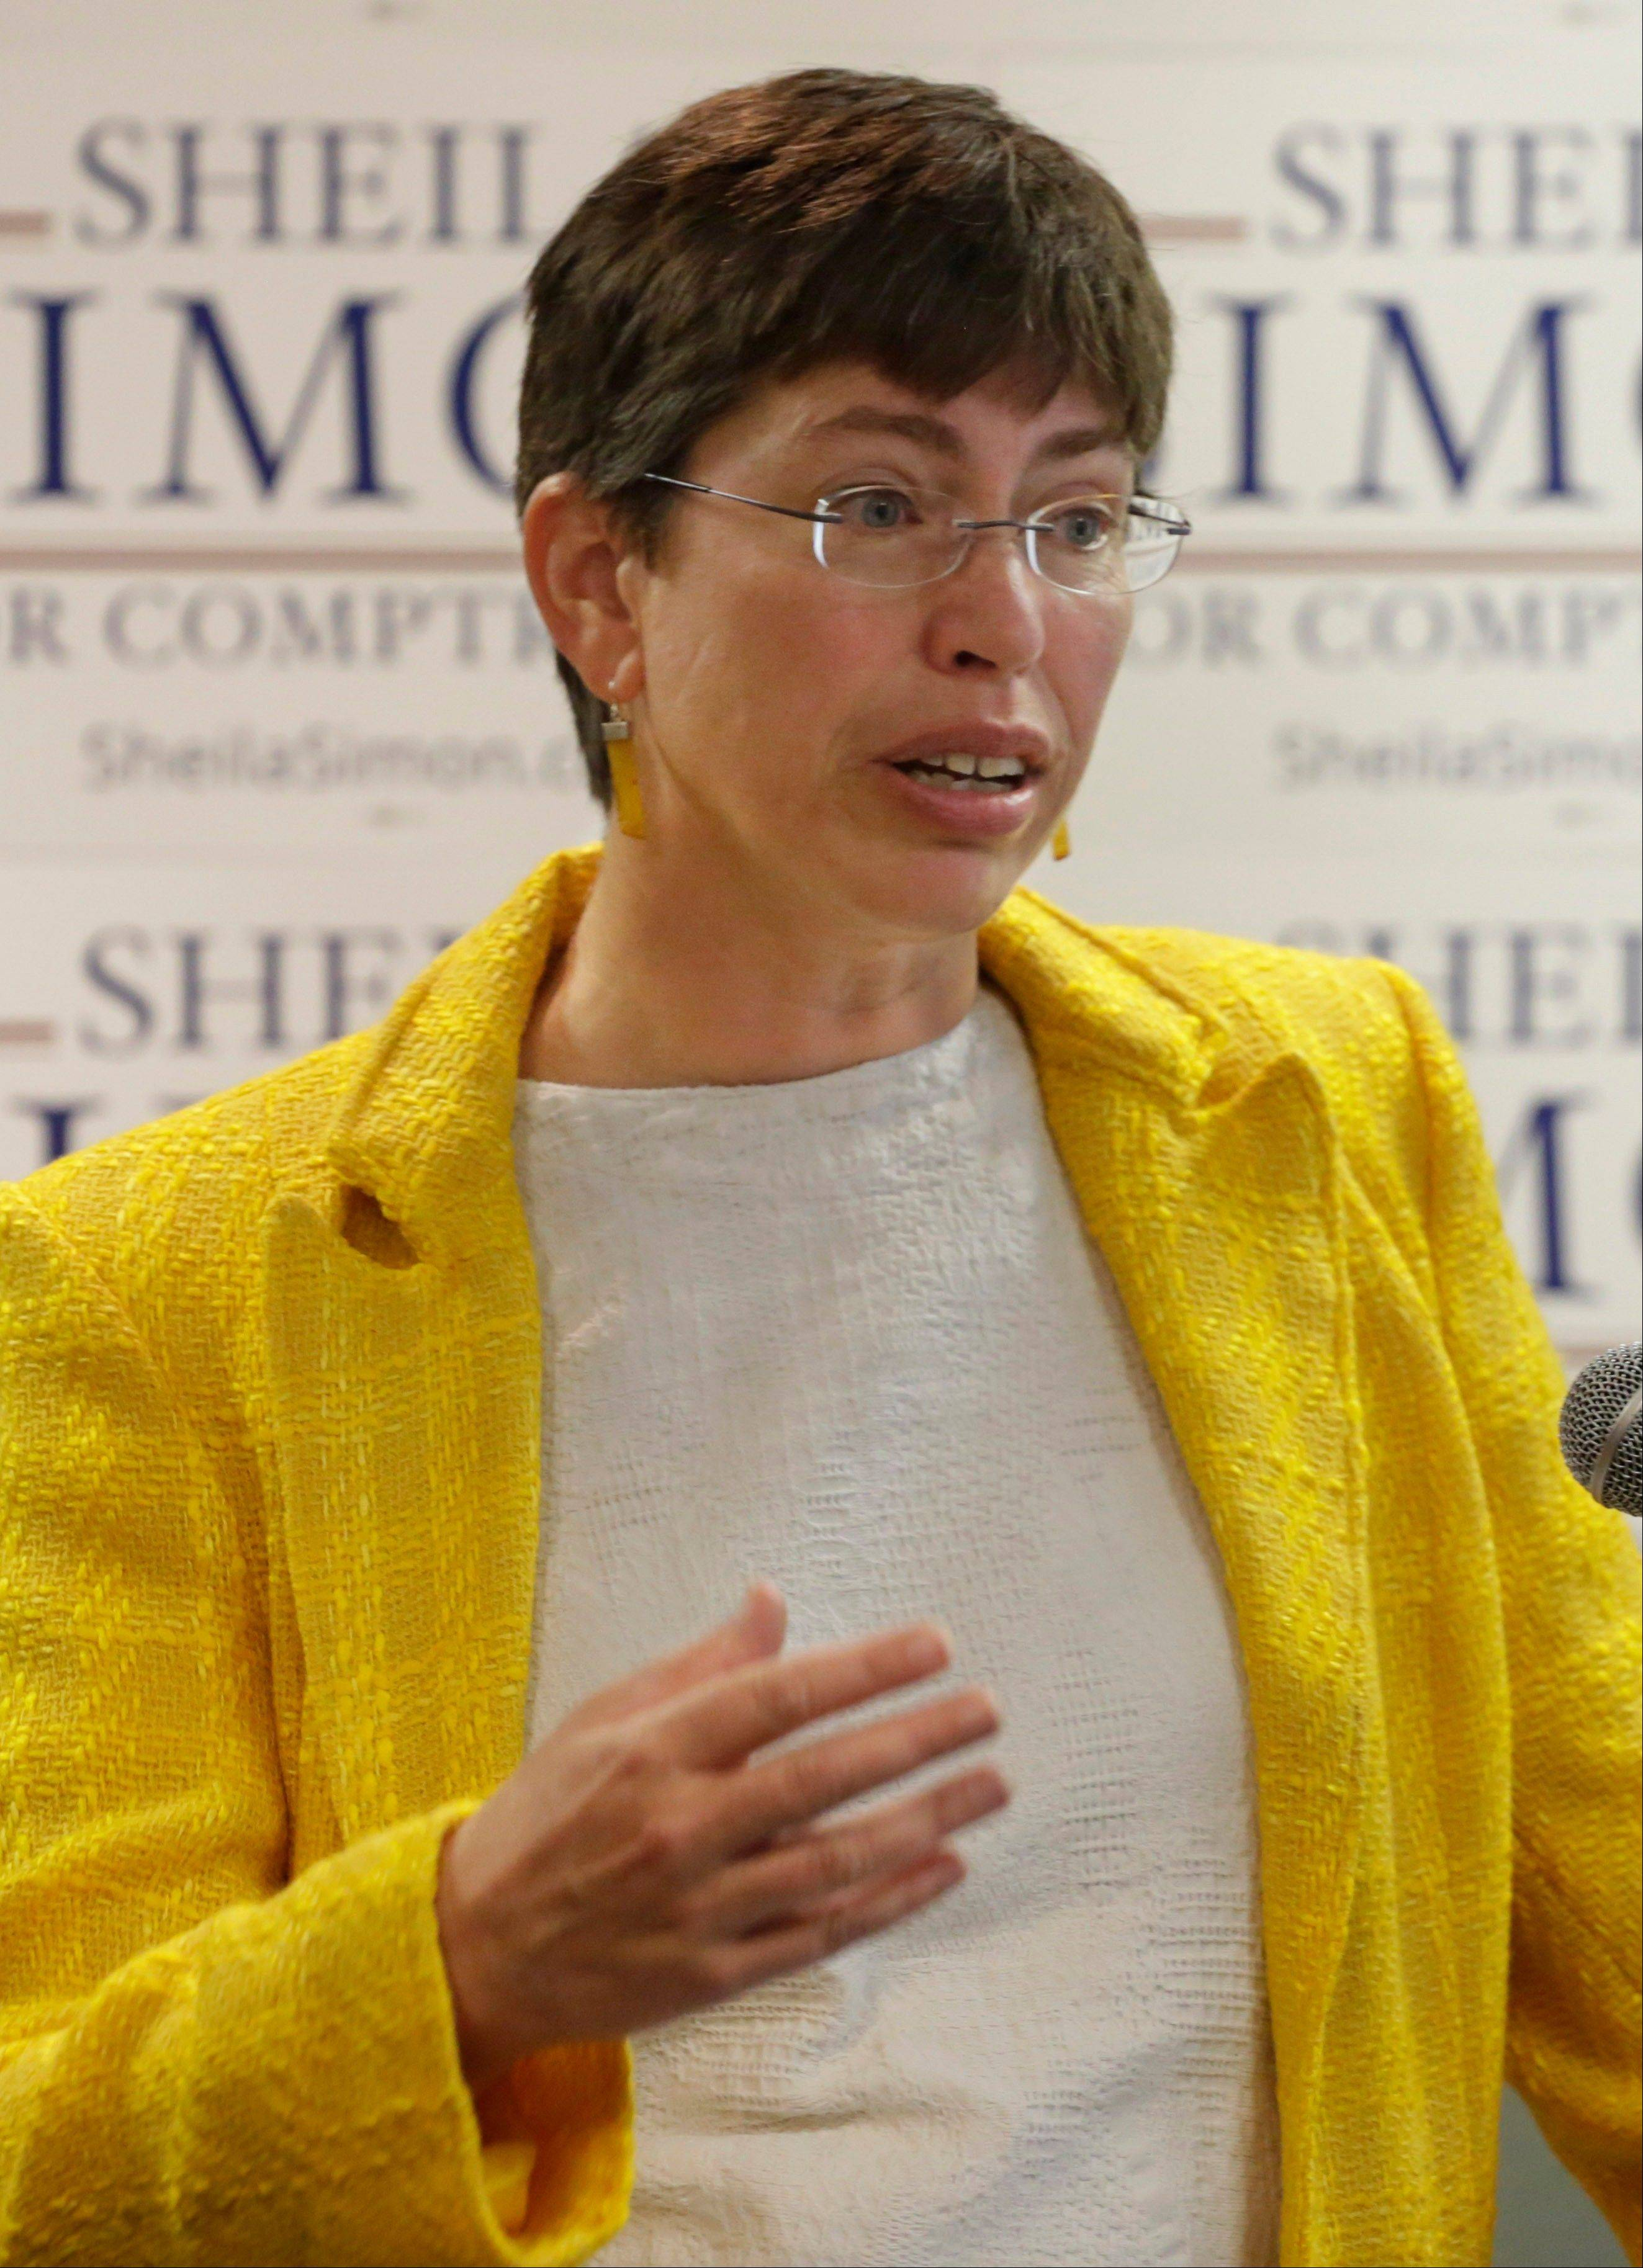 Lt. Gov. Sheila Simon announces her candidacy for state comptroller at a news conference Wednesday in Chicago.